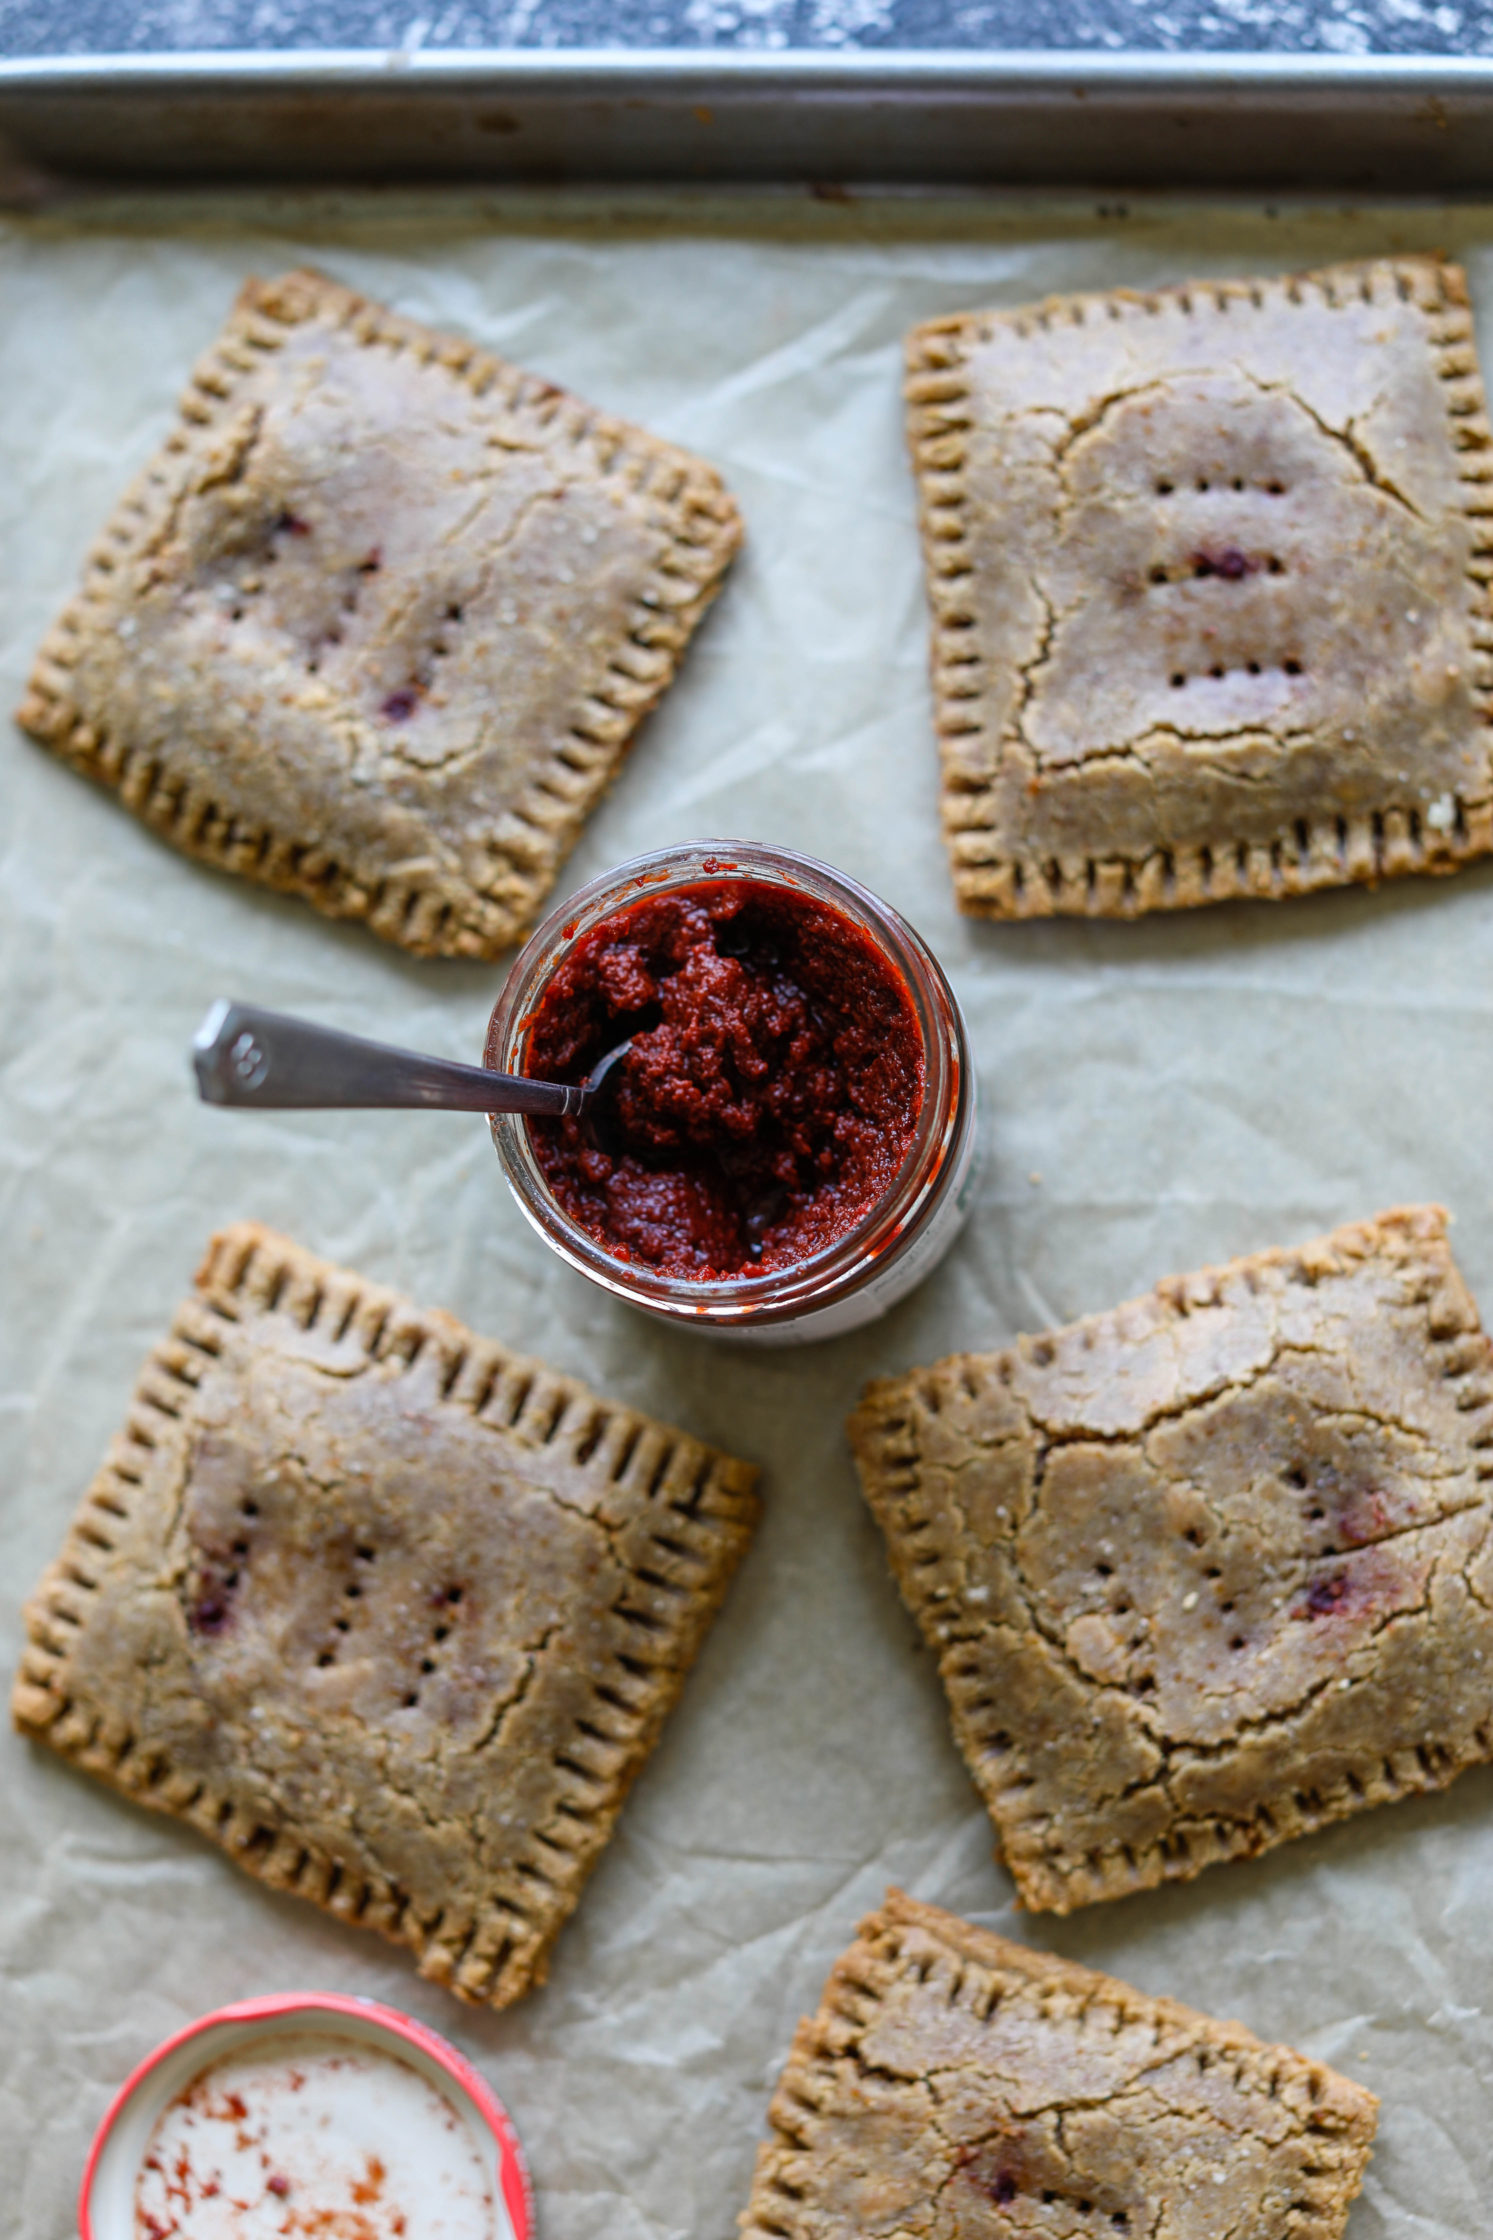 Cherry Almond Flour Pop-Tarts by Flora & Vino